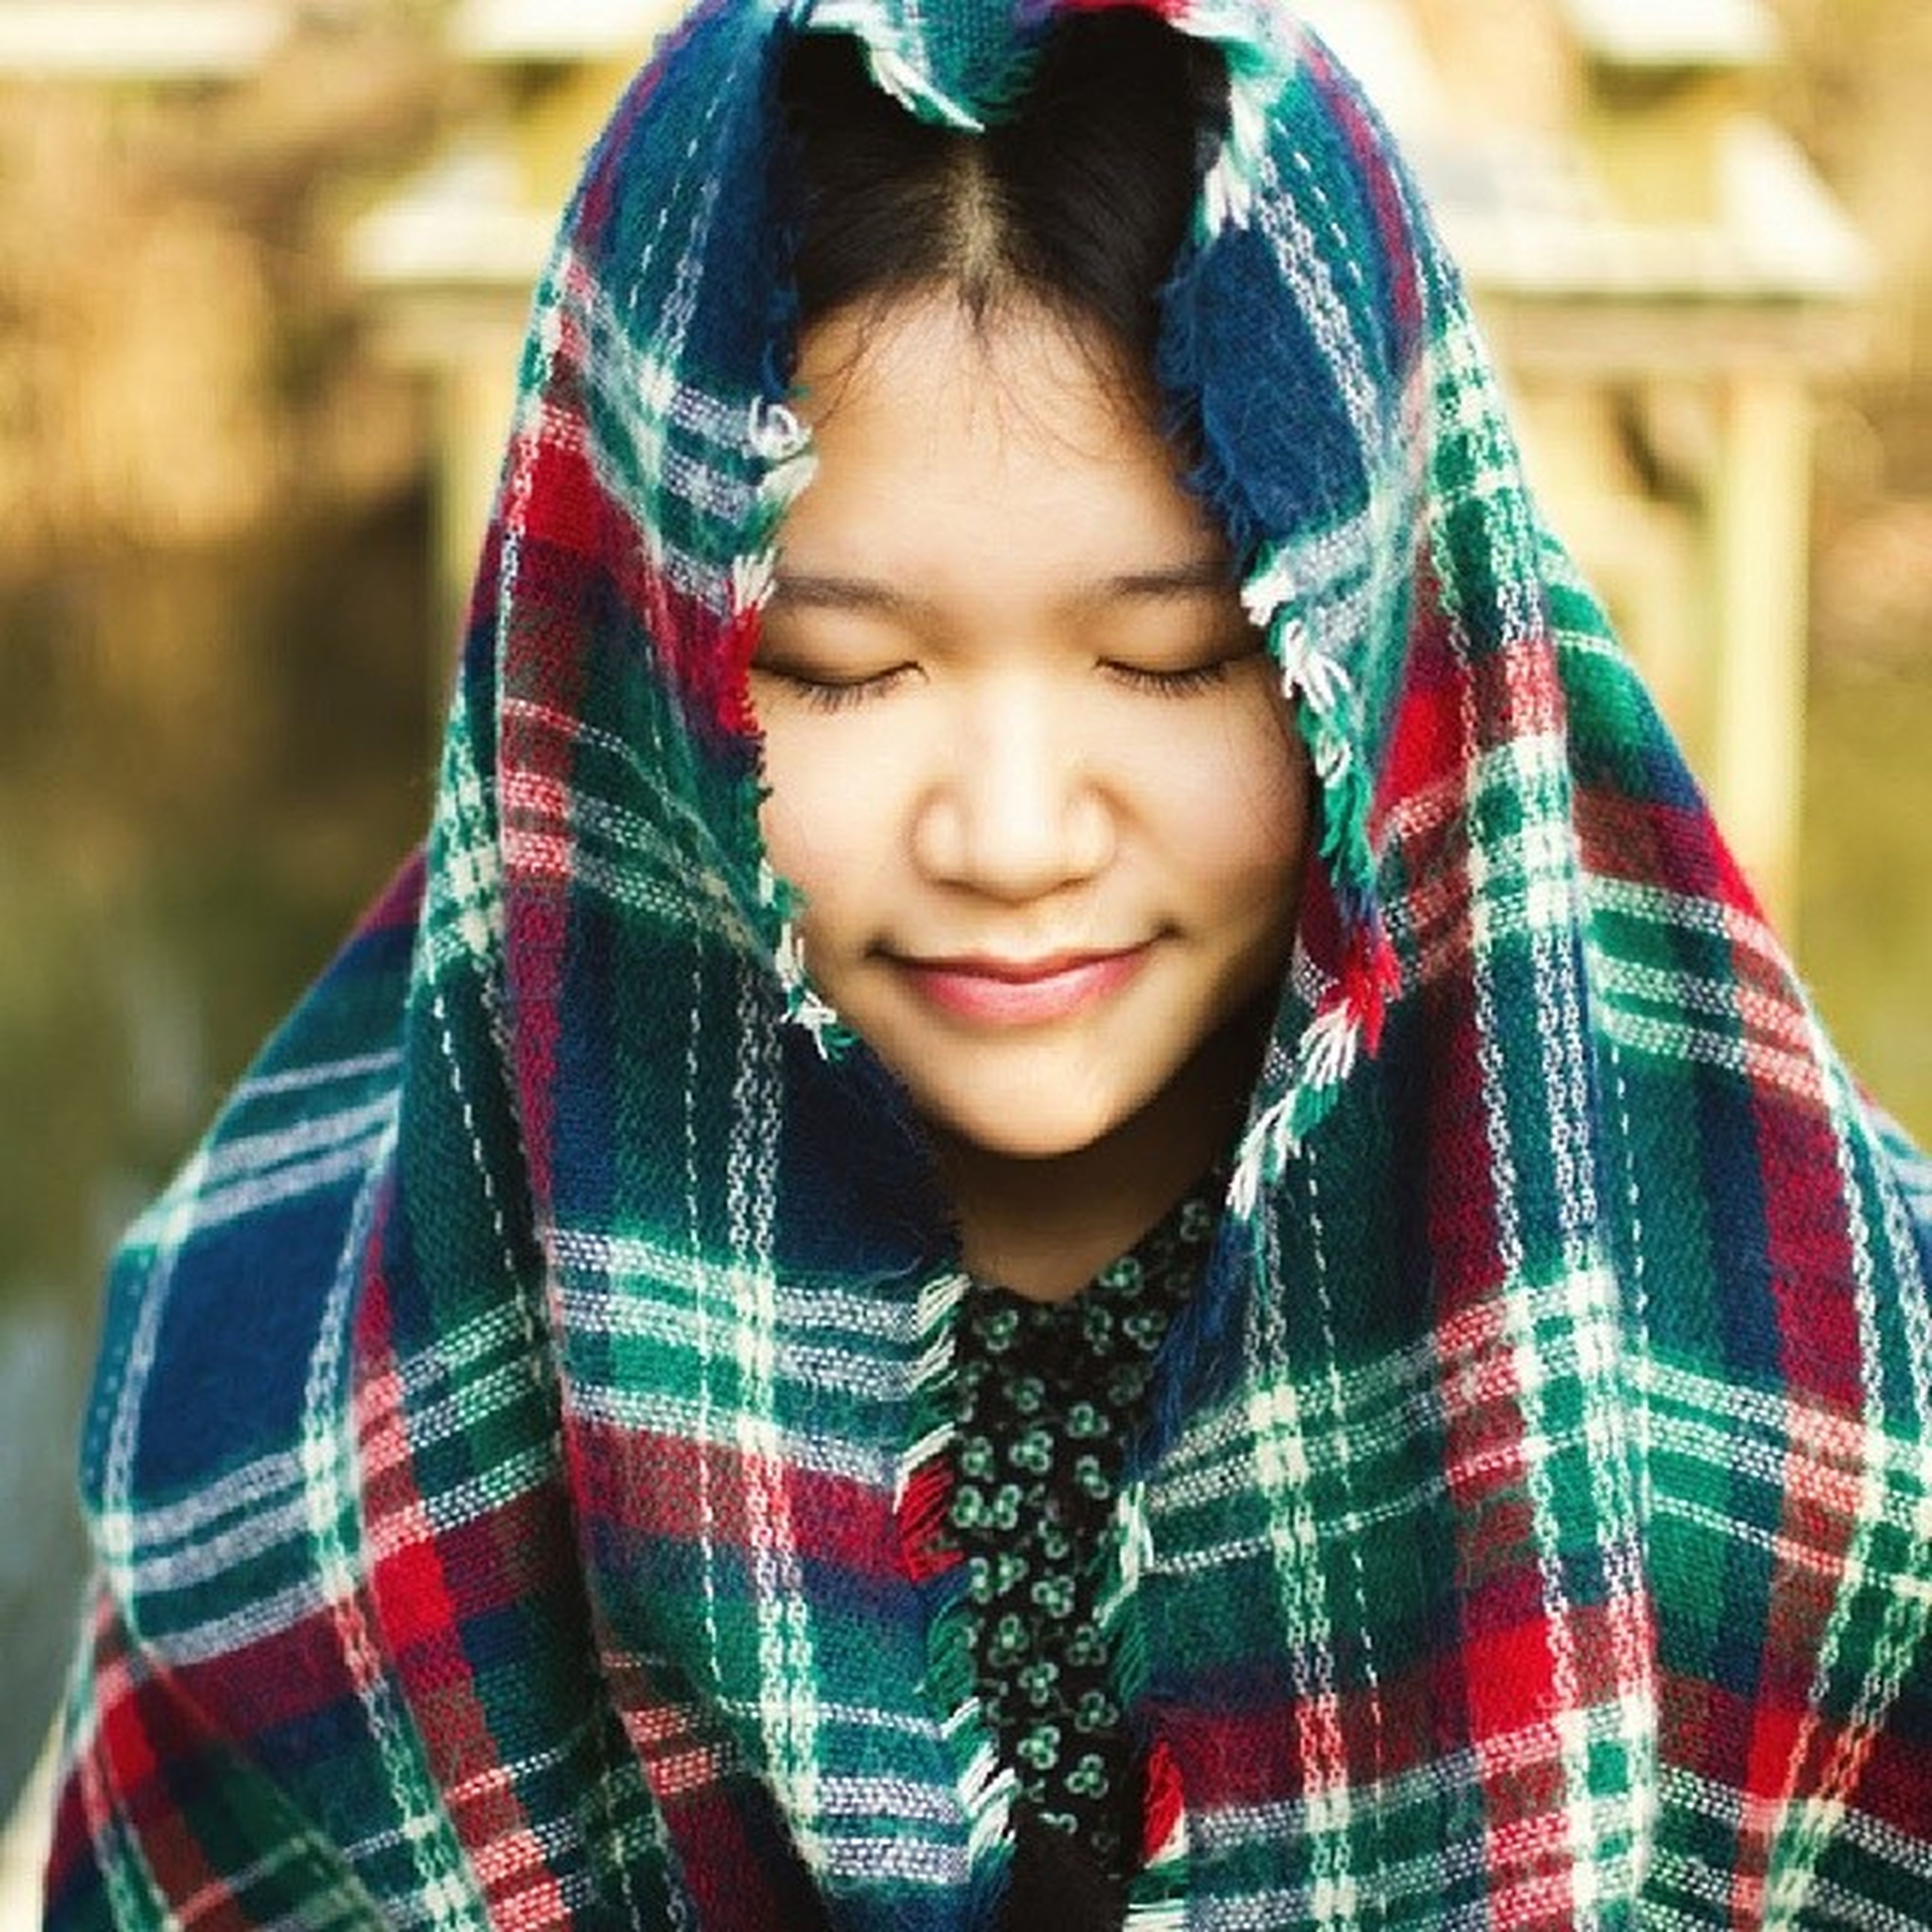 person, lifestyles, casual clothing, focus on foreground, front view, portrait, looking at camera, leisure activity, childhood, elementary age, headshot, smiling, girls, warm clothing, waist up, standing, happiness, innocence